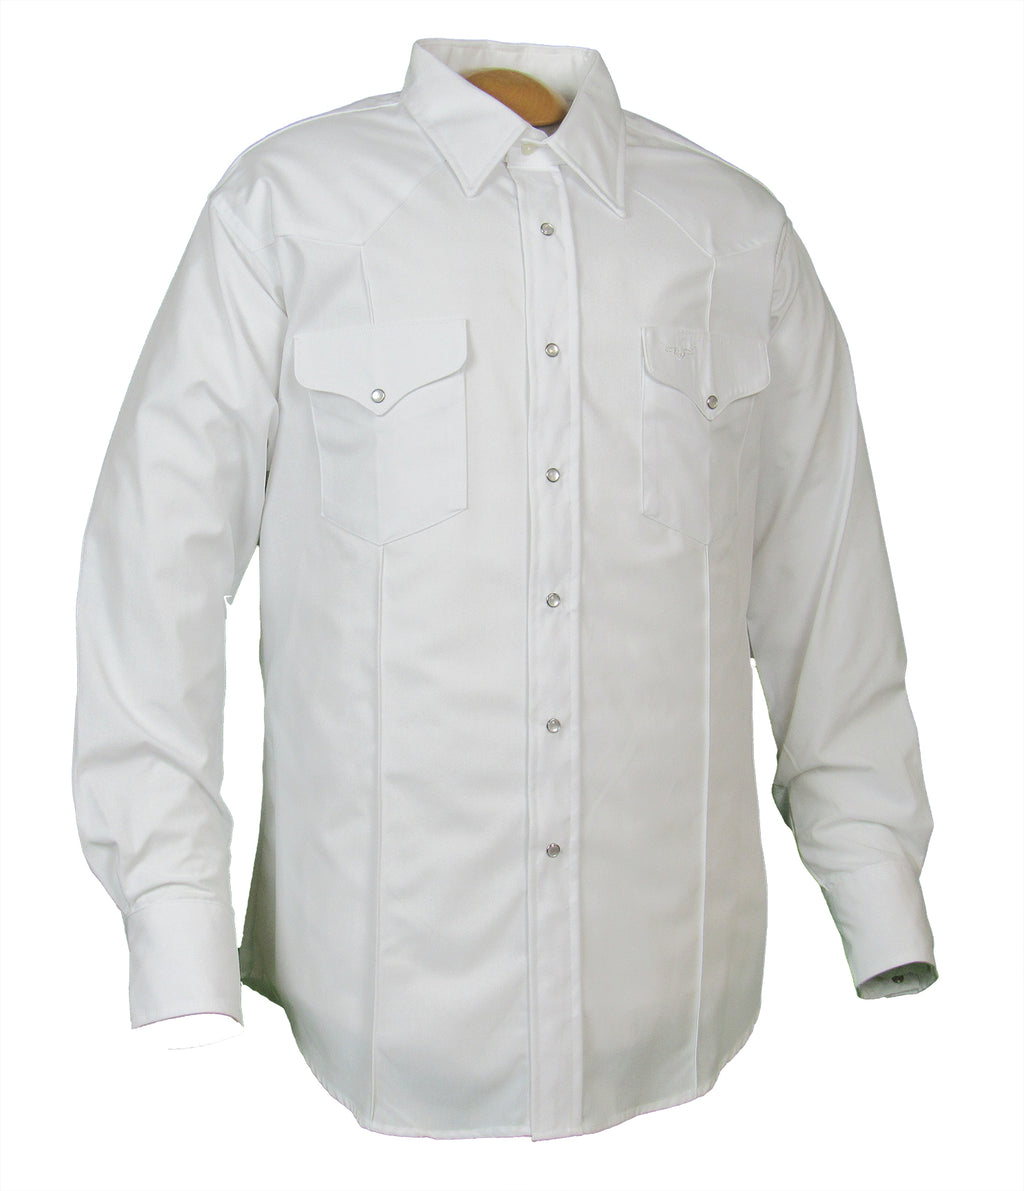 Rancher Crease - White - Long Sleeve - Snaps